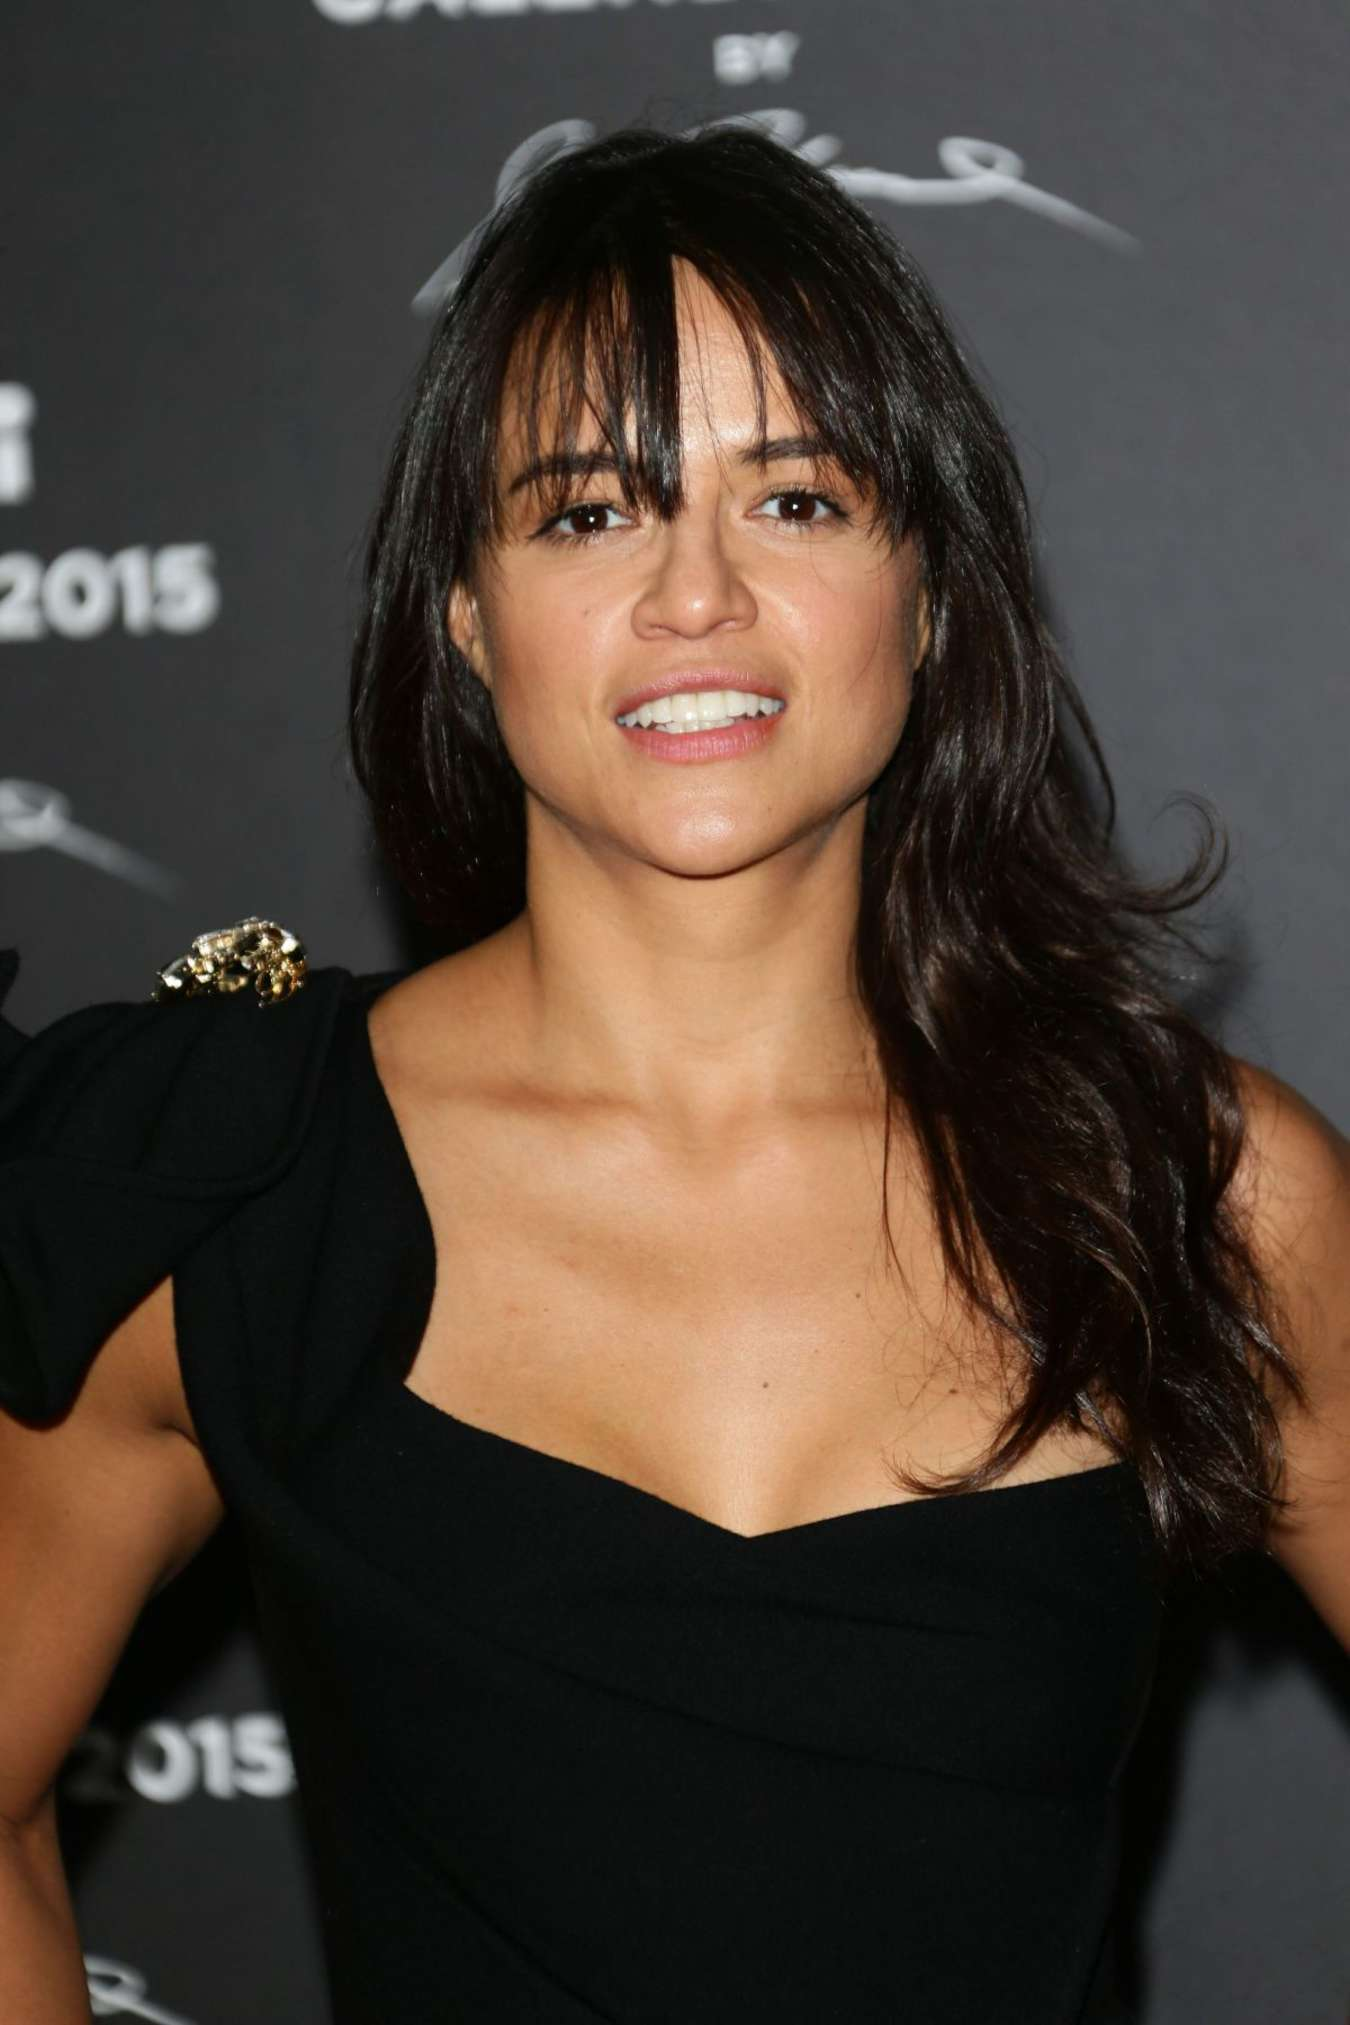 Michelle Rodriguez is one of the highest earning action heroines